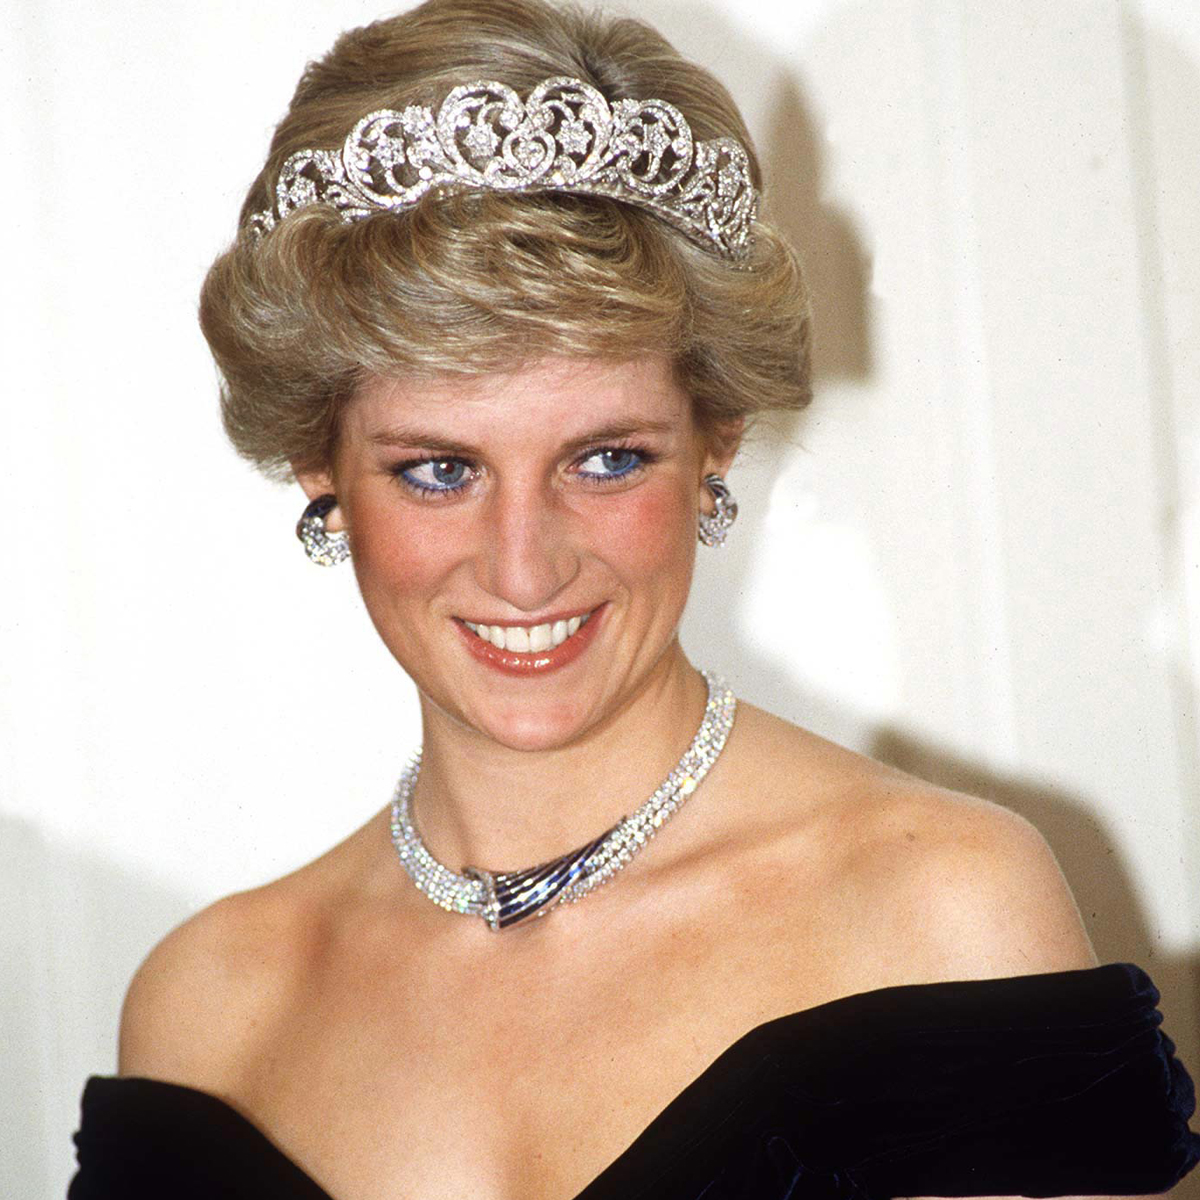 BONN, GERMANY - NOVEMBER 02: Princess Of Wales In Bonn, Germany Wearing Sapphire And Diamond Jewels Which Were A Gift From The Sultan Of Oman (the Tiara Is Her Own Spencer Tiara) With A Dress Designed By Fashion Designer Victor Edelstein (Photo by Tim Graham/Getty Images)